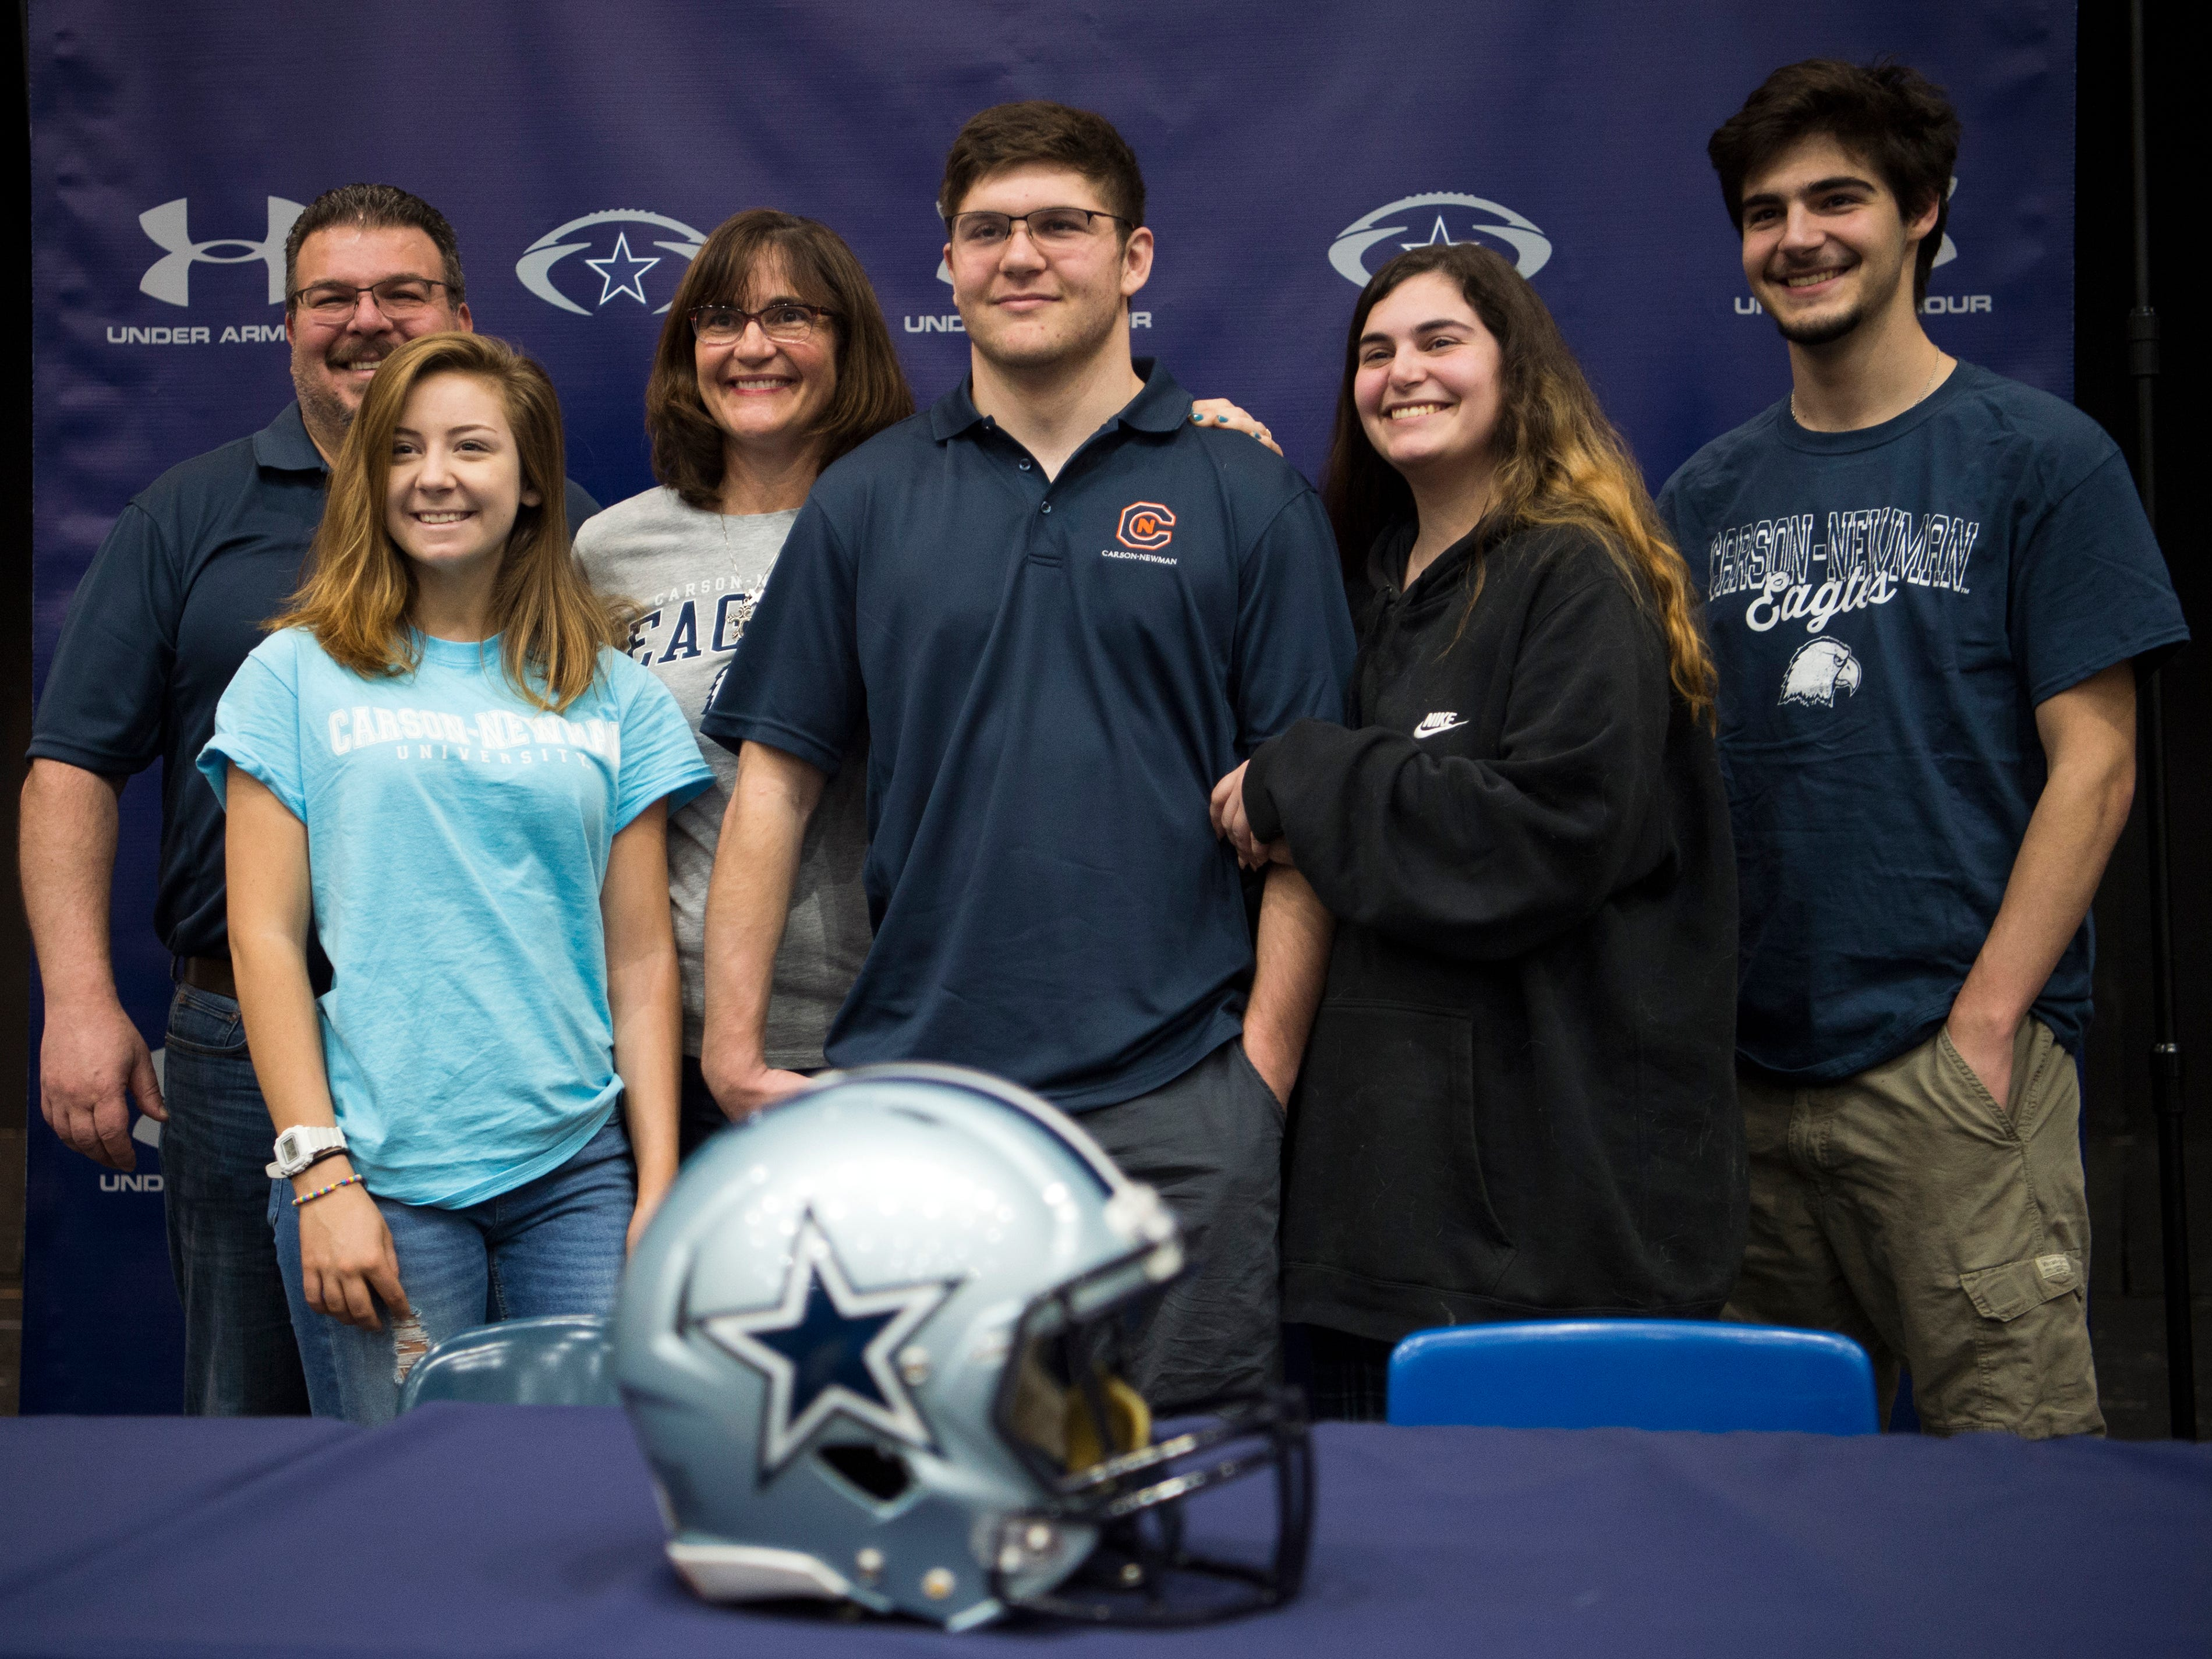 Farragut football player Joey Dietz during a National Signing Day event at Farragut High's auditorium on Wednesday, February 6, 2019.